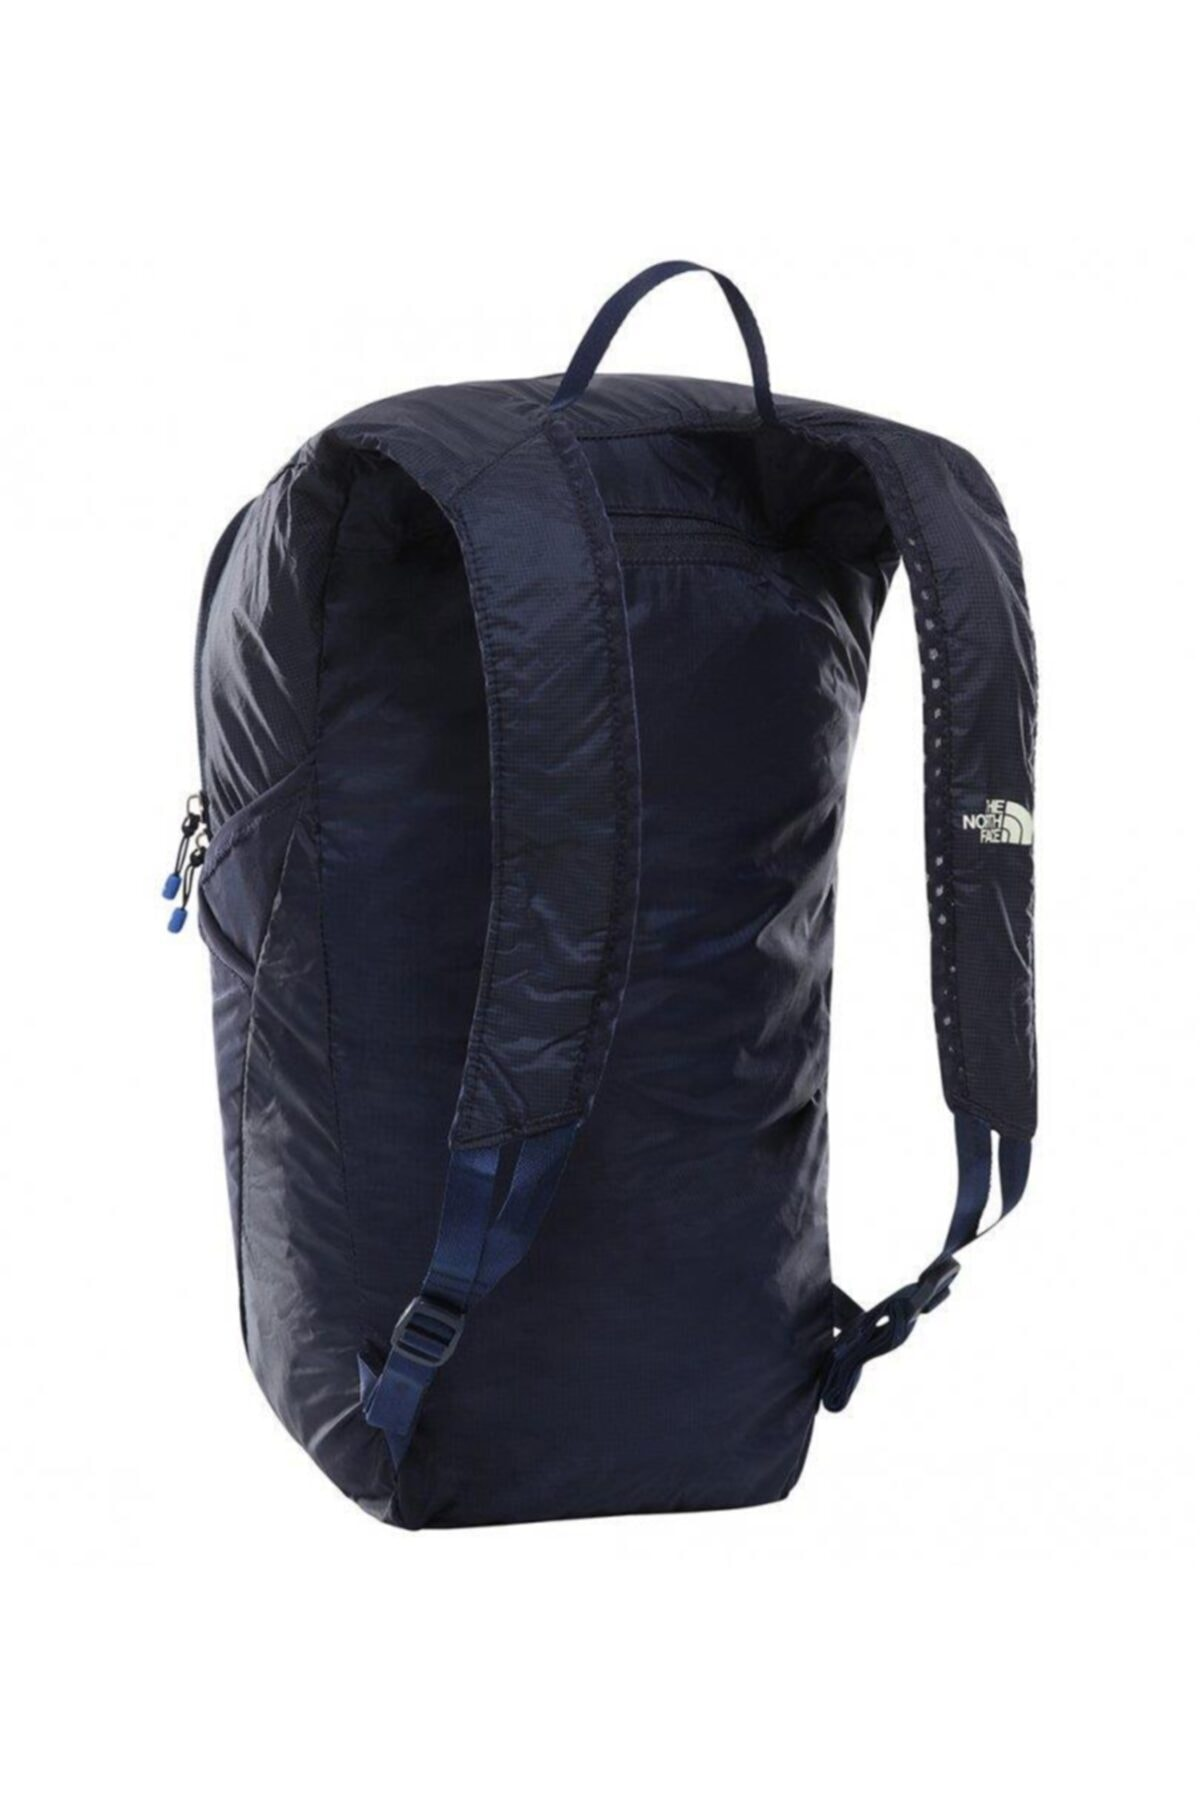 THE NORTH FACE Flyweight Pack Nf0A3Kwrfj61 2